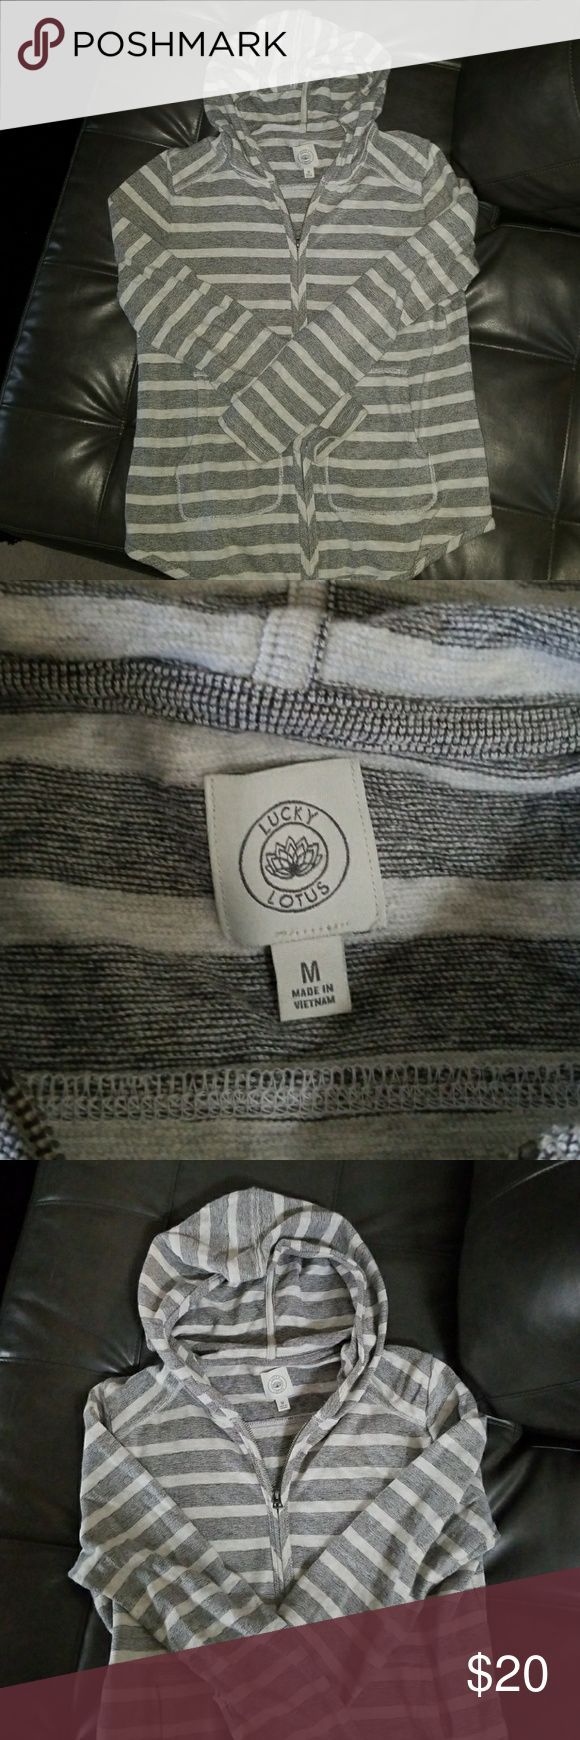 Women's Lucky Brand zip up hoodie Gray and cream Terry hoodie with kangaroo pockets. Great for spring. Lucky Brand Sweaters Cardigans